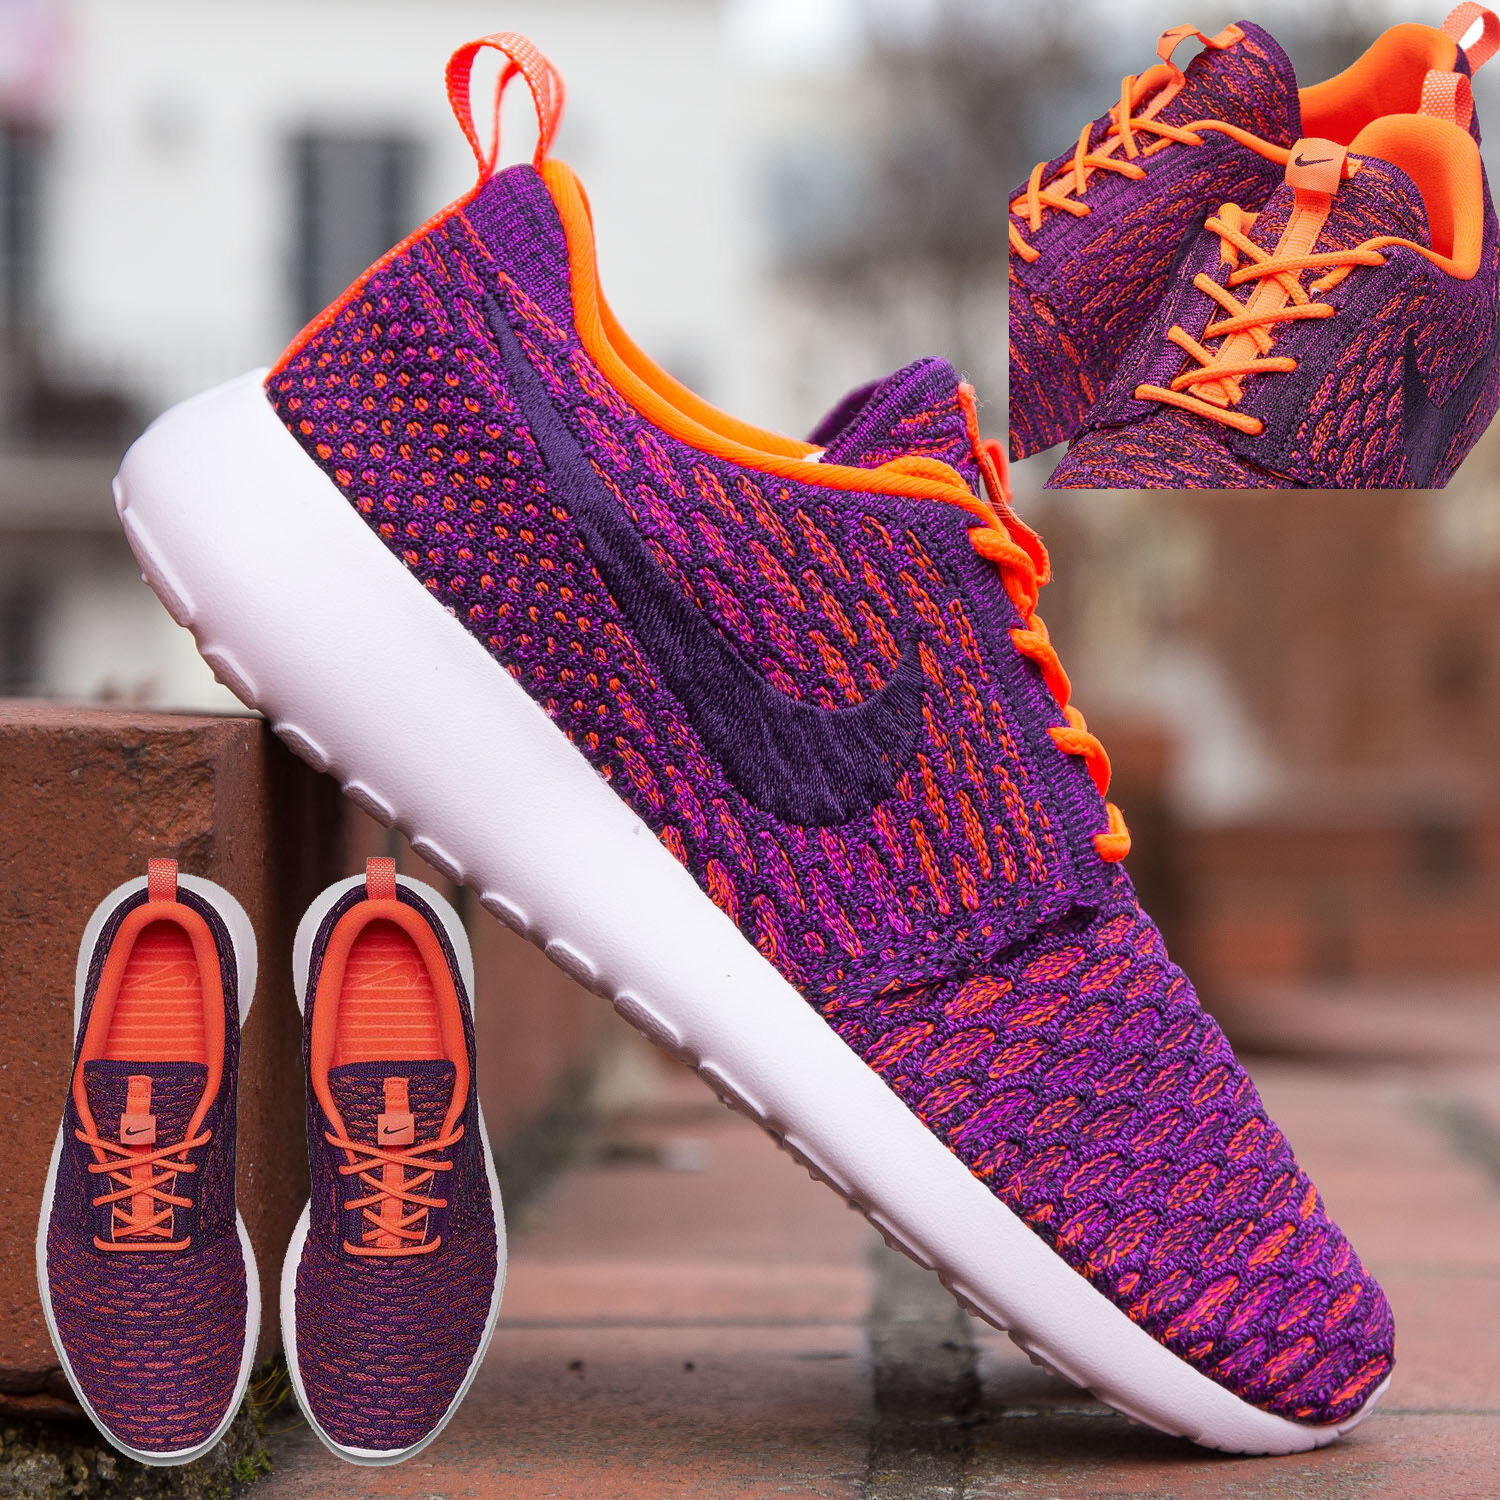 NIKE ROSHE ONE FLYKNIT WOMEN's RUNNING TOTAL CRIMSON - VIVID PURPLE - PURPLE NEW